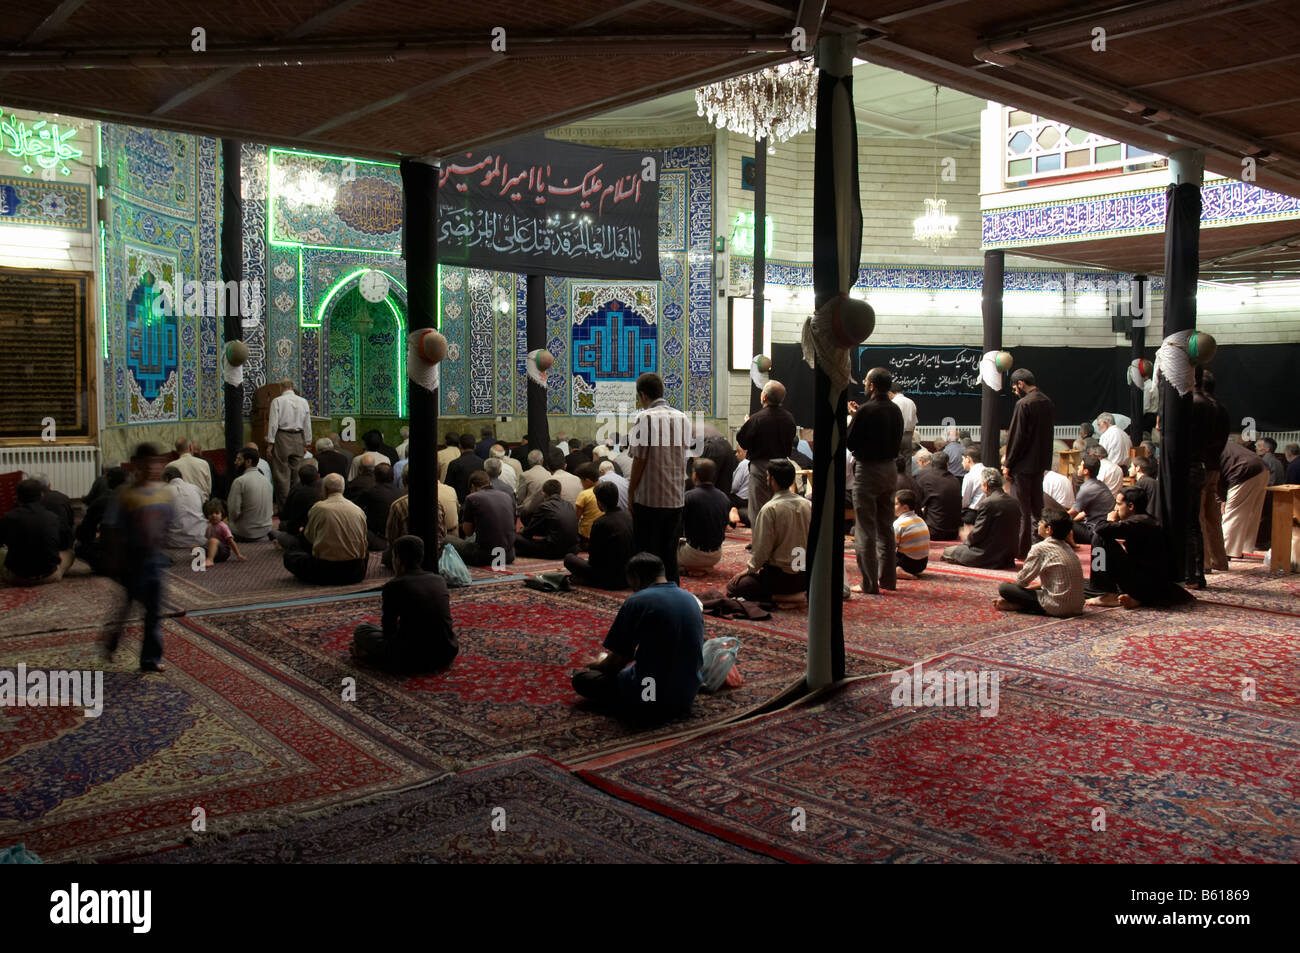 Men praying during Holy Defence Week in Seyedo Shohada mosque in Nazi Anbad Down town Tehran - Stock Image